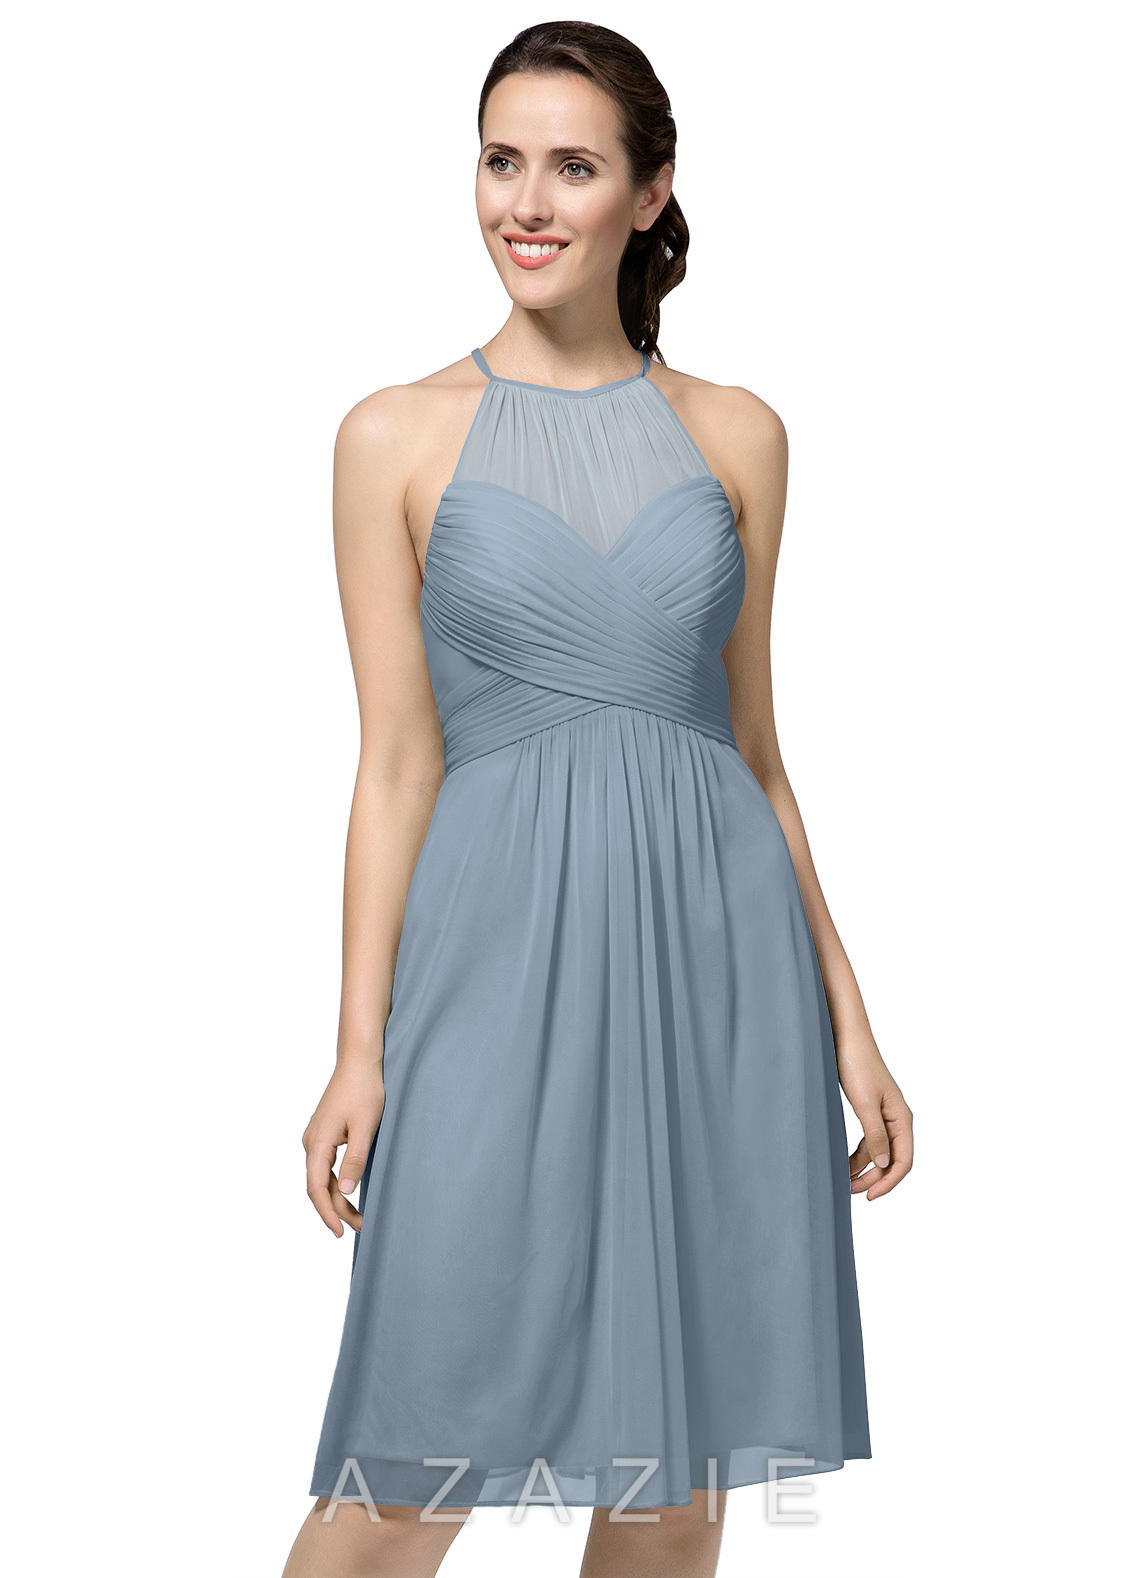 dcbb9eae5dc7 Azazie Vicki Bridesmaid Dress | Azazie